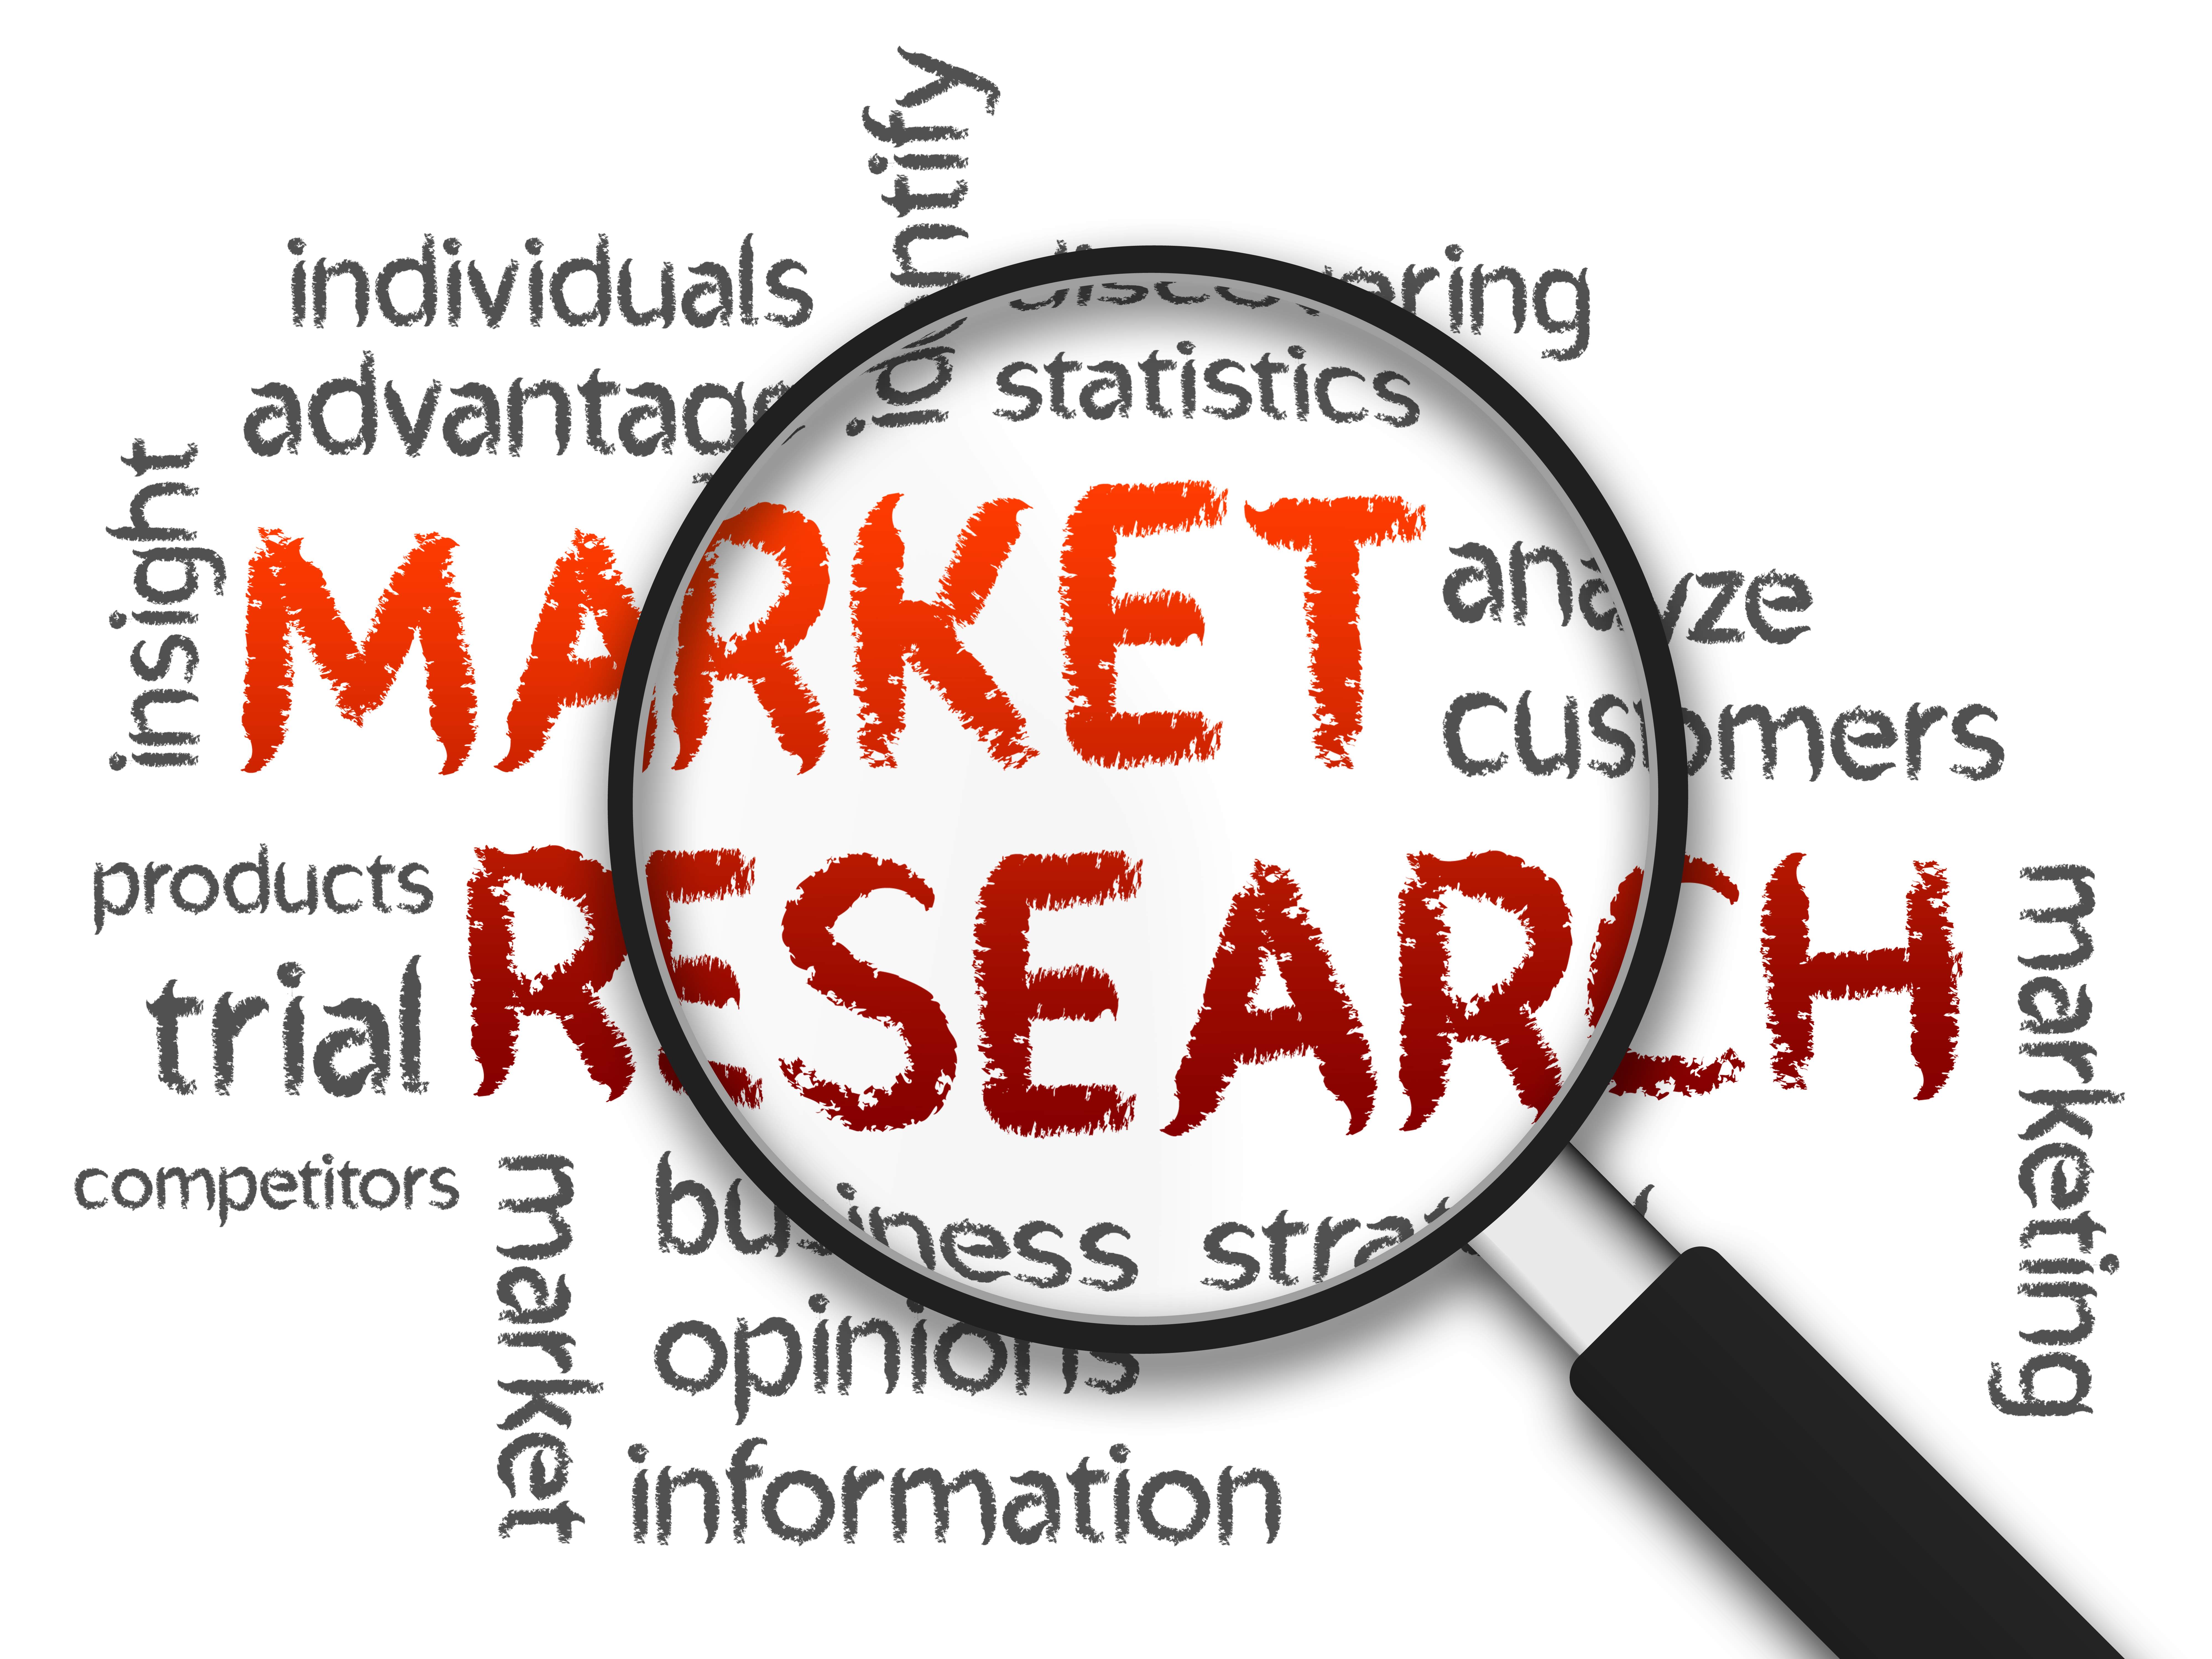 market feasibility study of online marketing Feasibility study b) market analysis - a market analysis to determine likely levels of participation and elements of the program that could maximize.